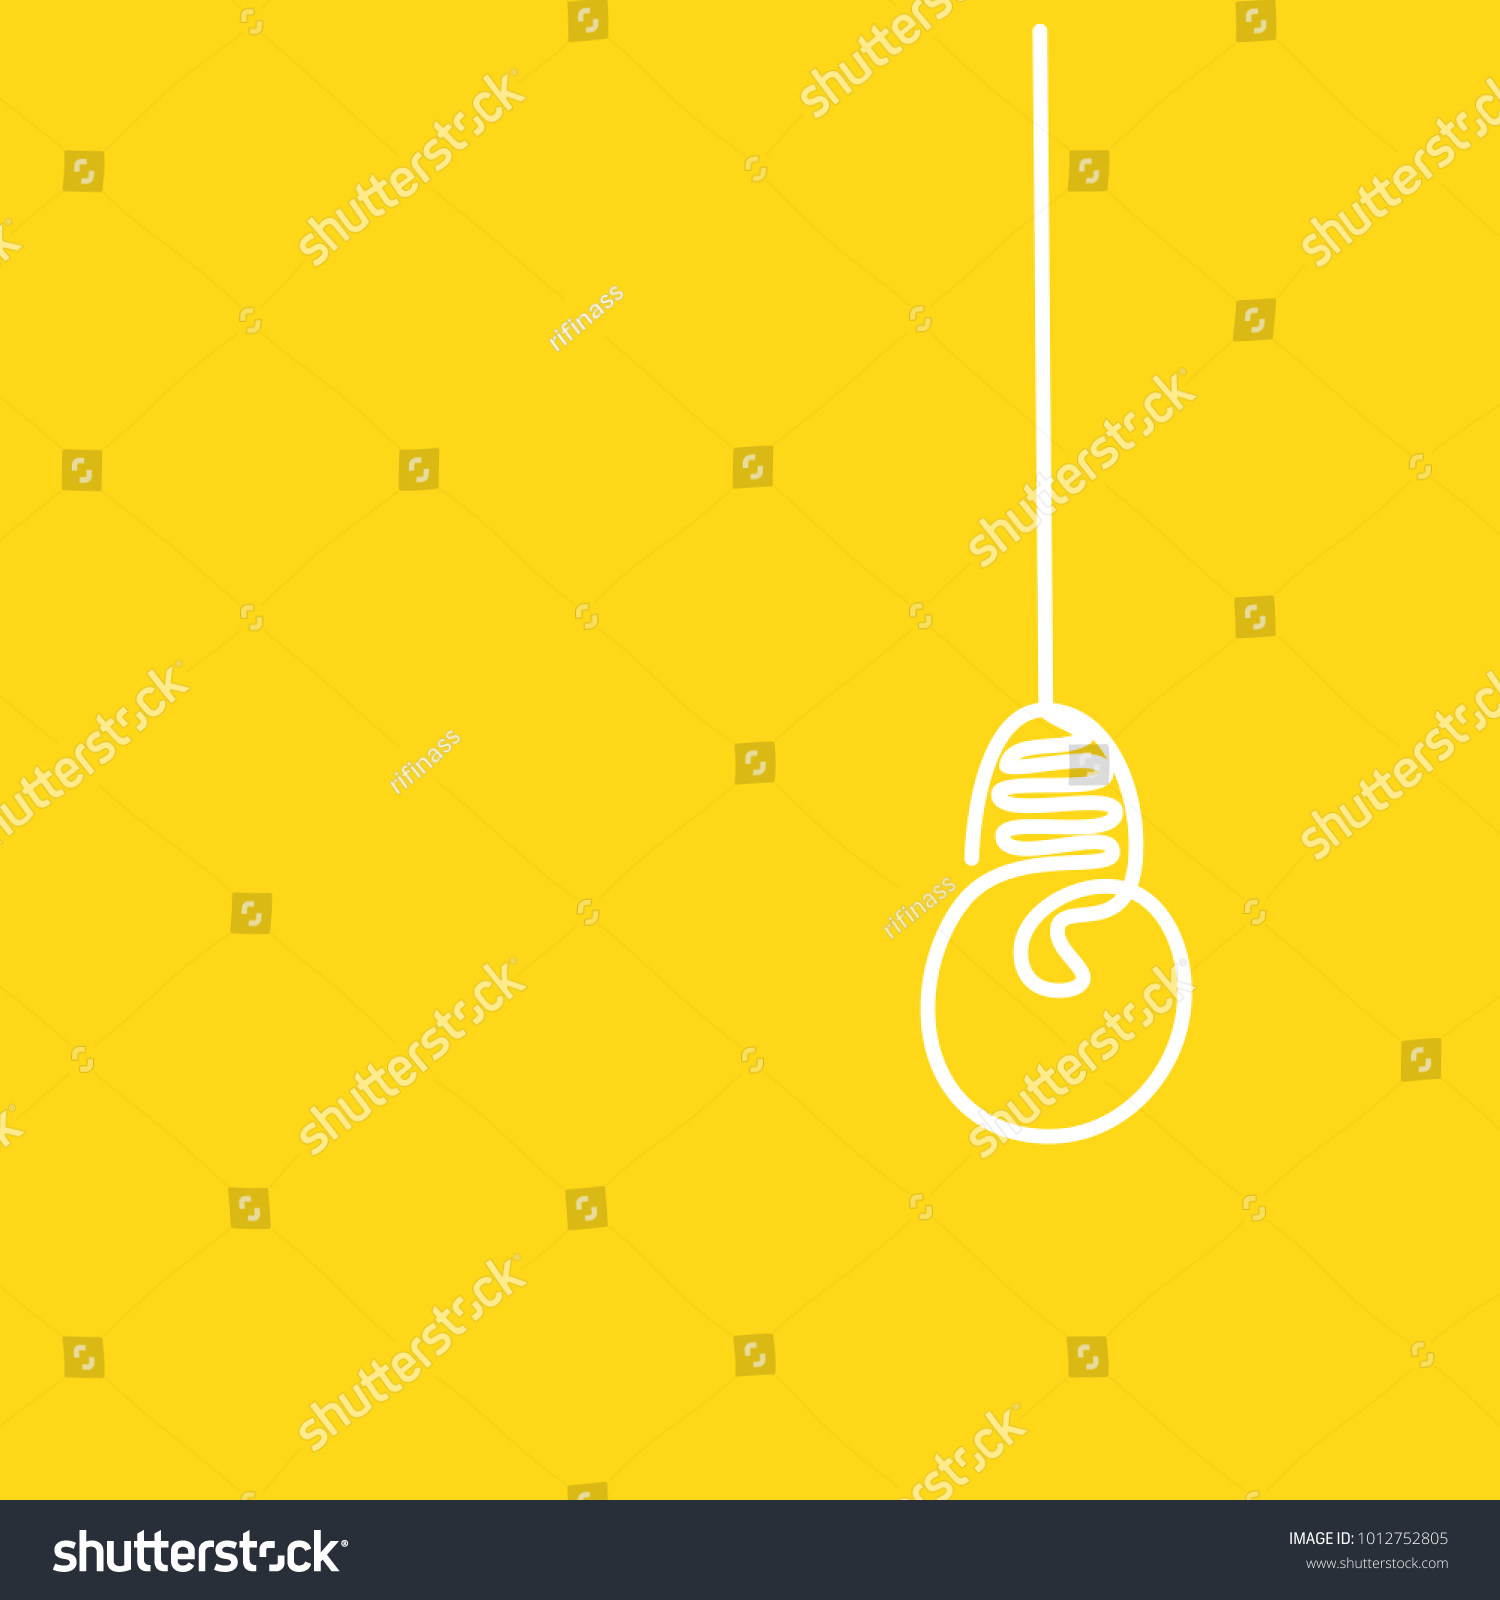 Idea Doodle Illustration Idea Related Wallpaper Stock Vector ...